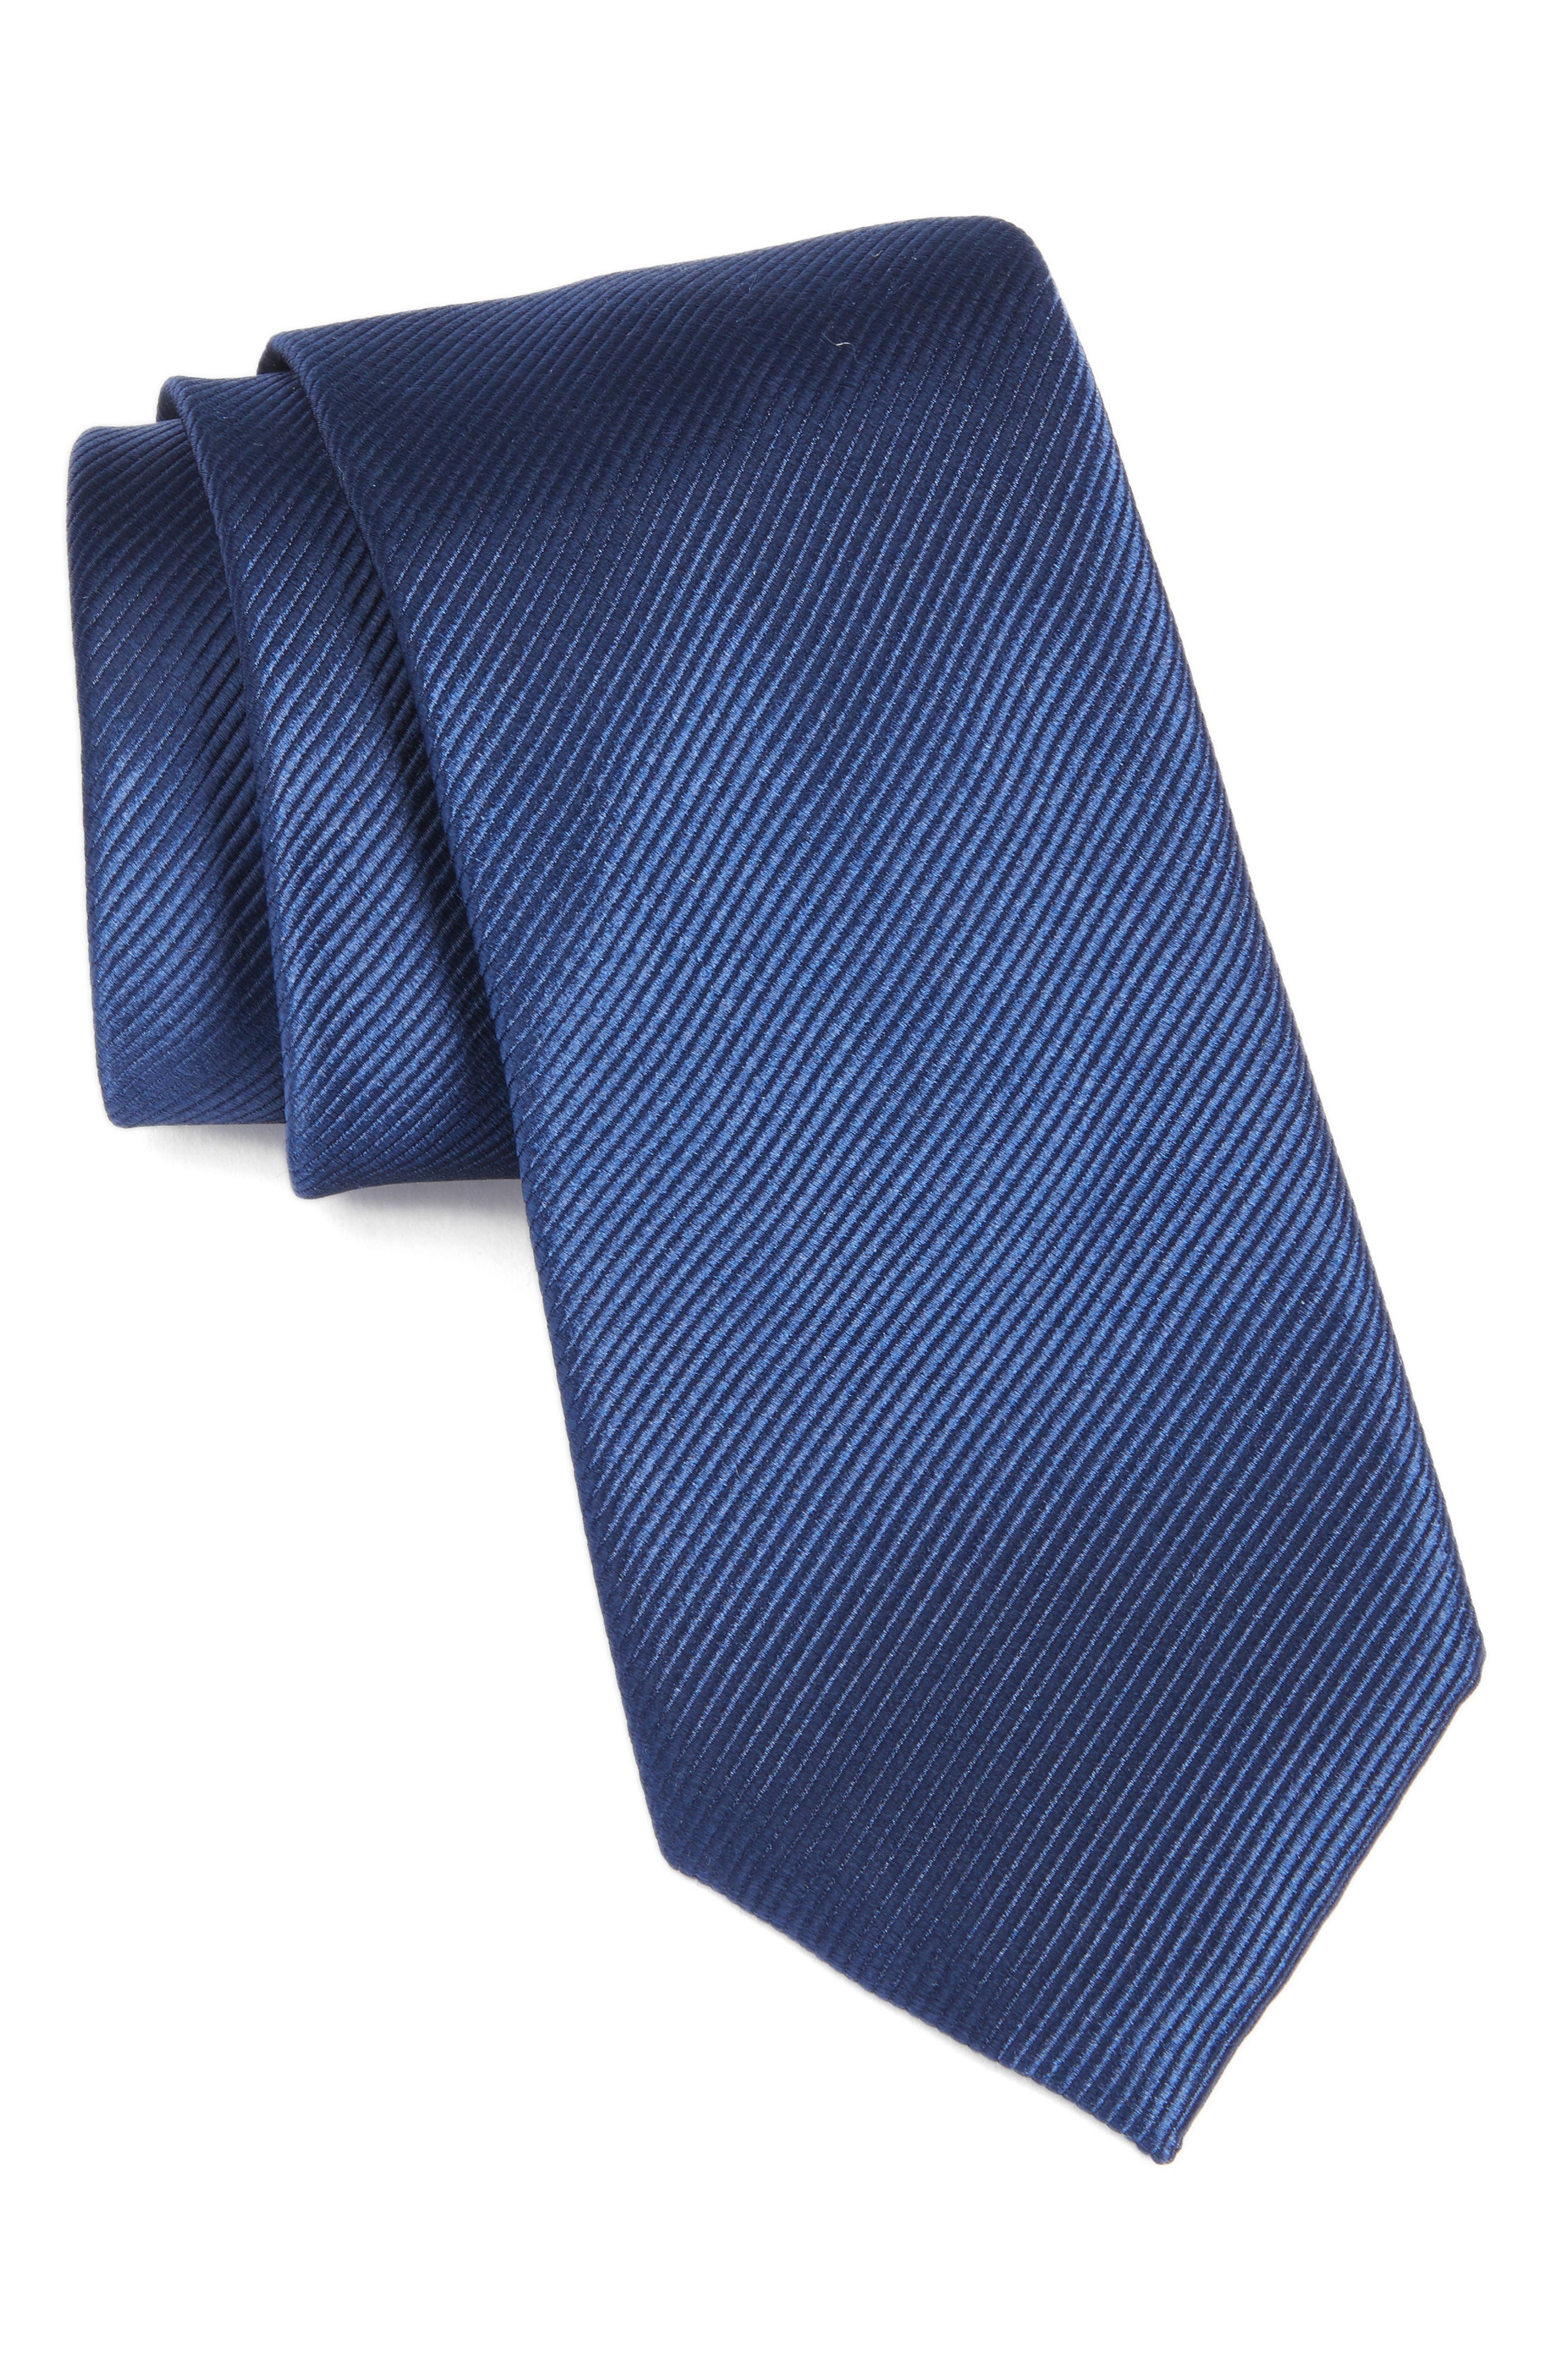 Solid Silk Tie,                             Main thumbnail 1, color,